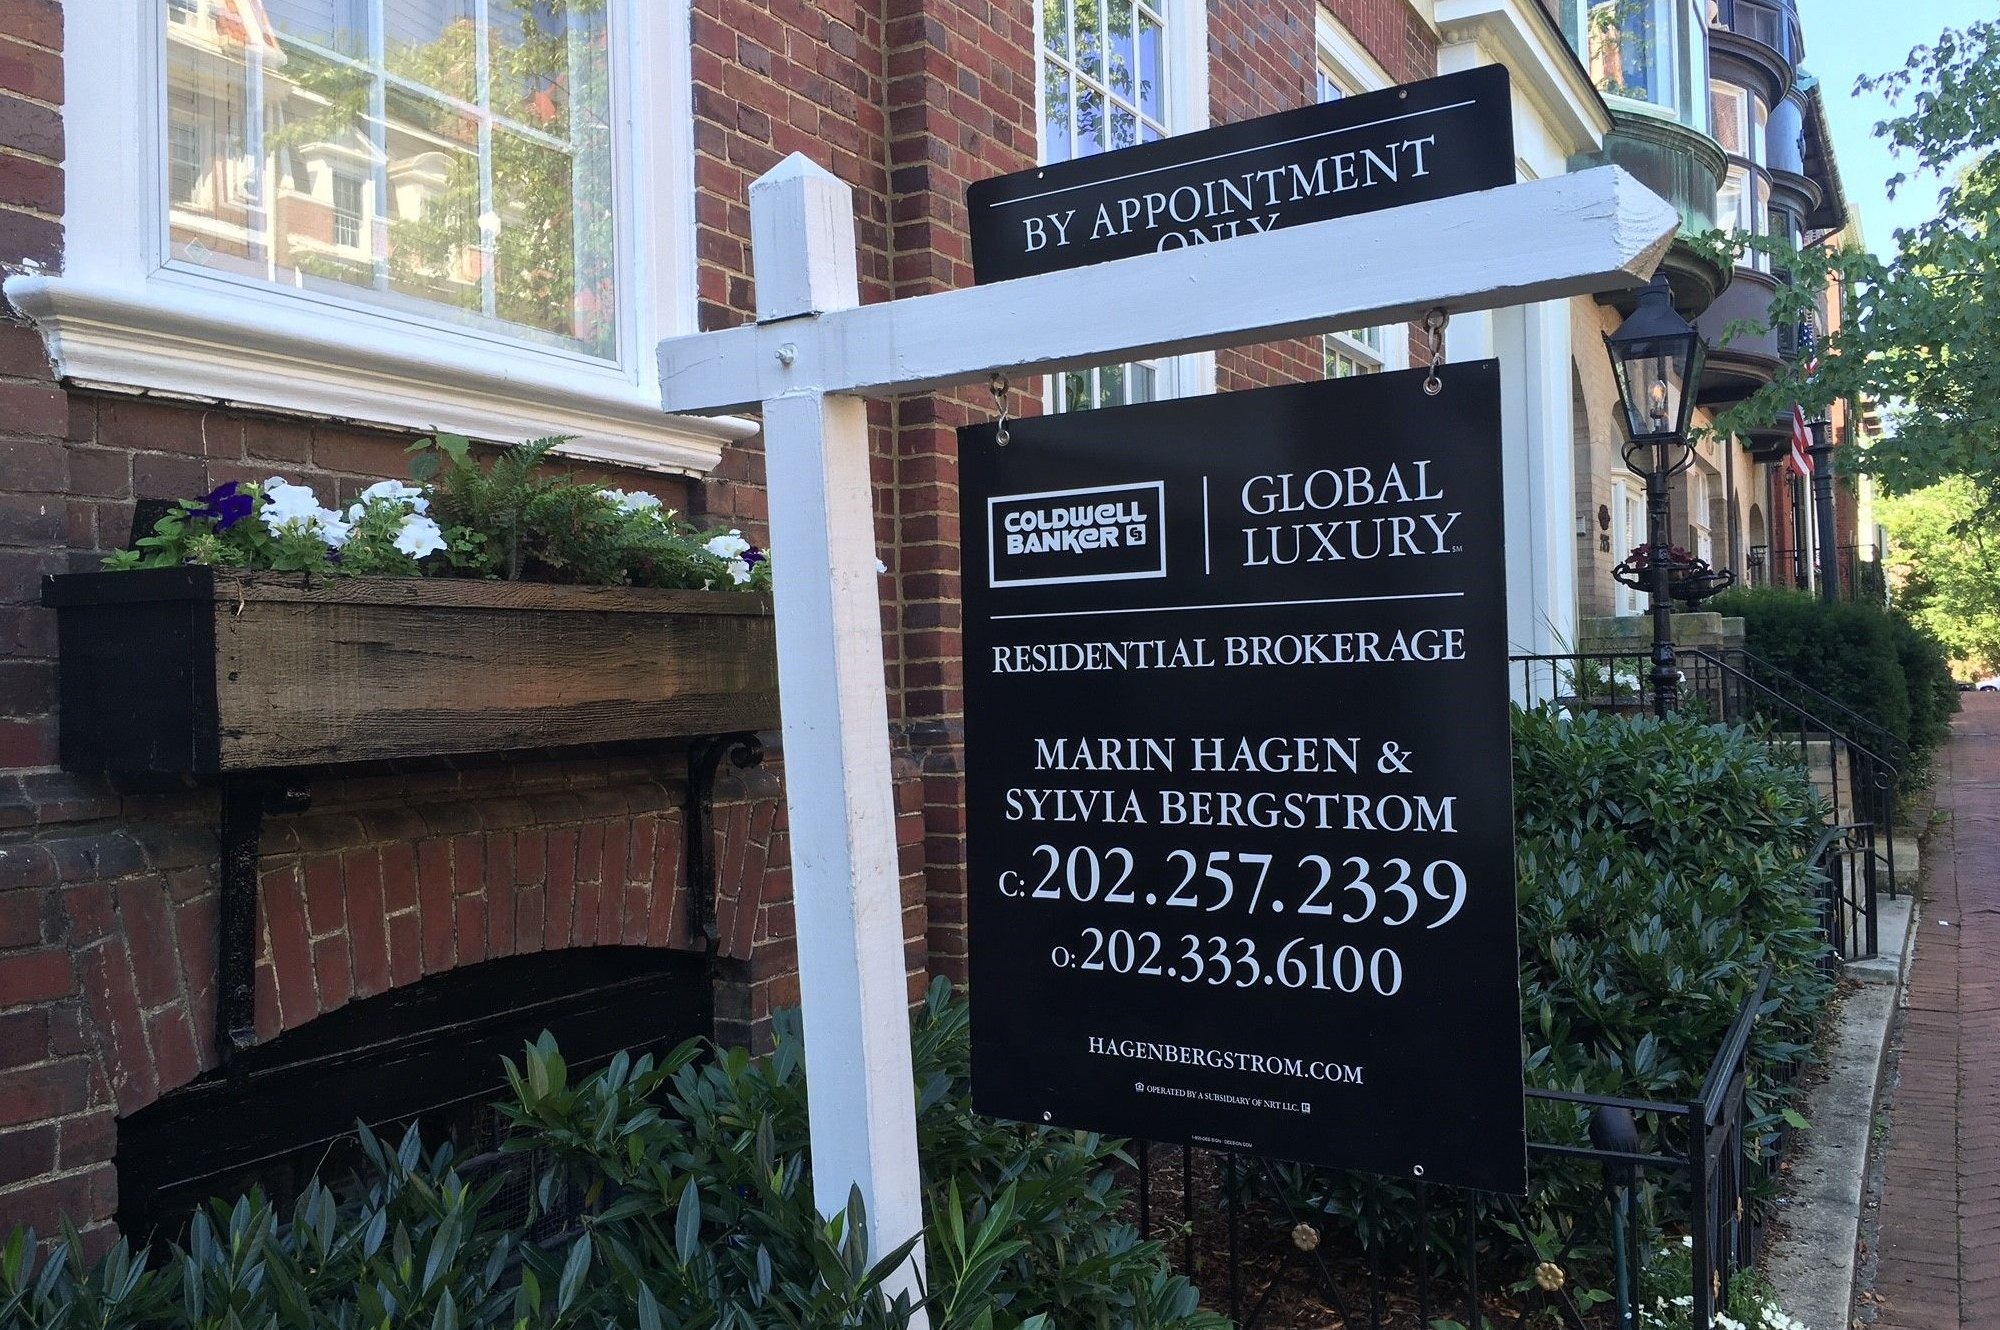 Listing service Bright MLS says the median price of a house or condo that sold metro wide in June was $490,000, the highest on record for the region, and up 4% from a year ago.